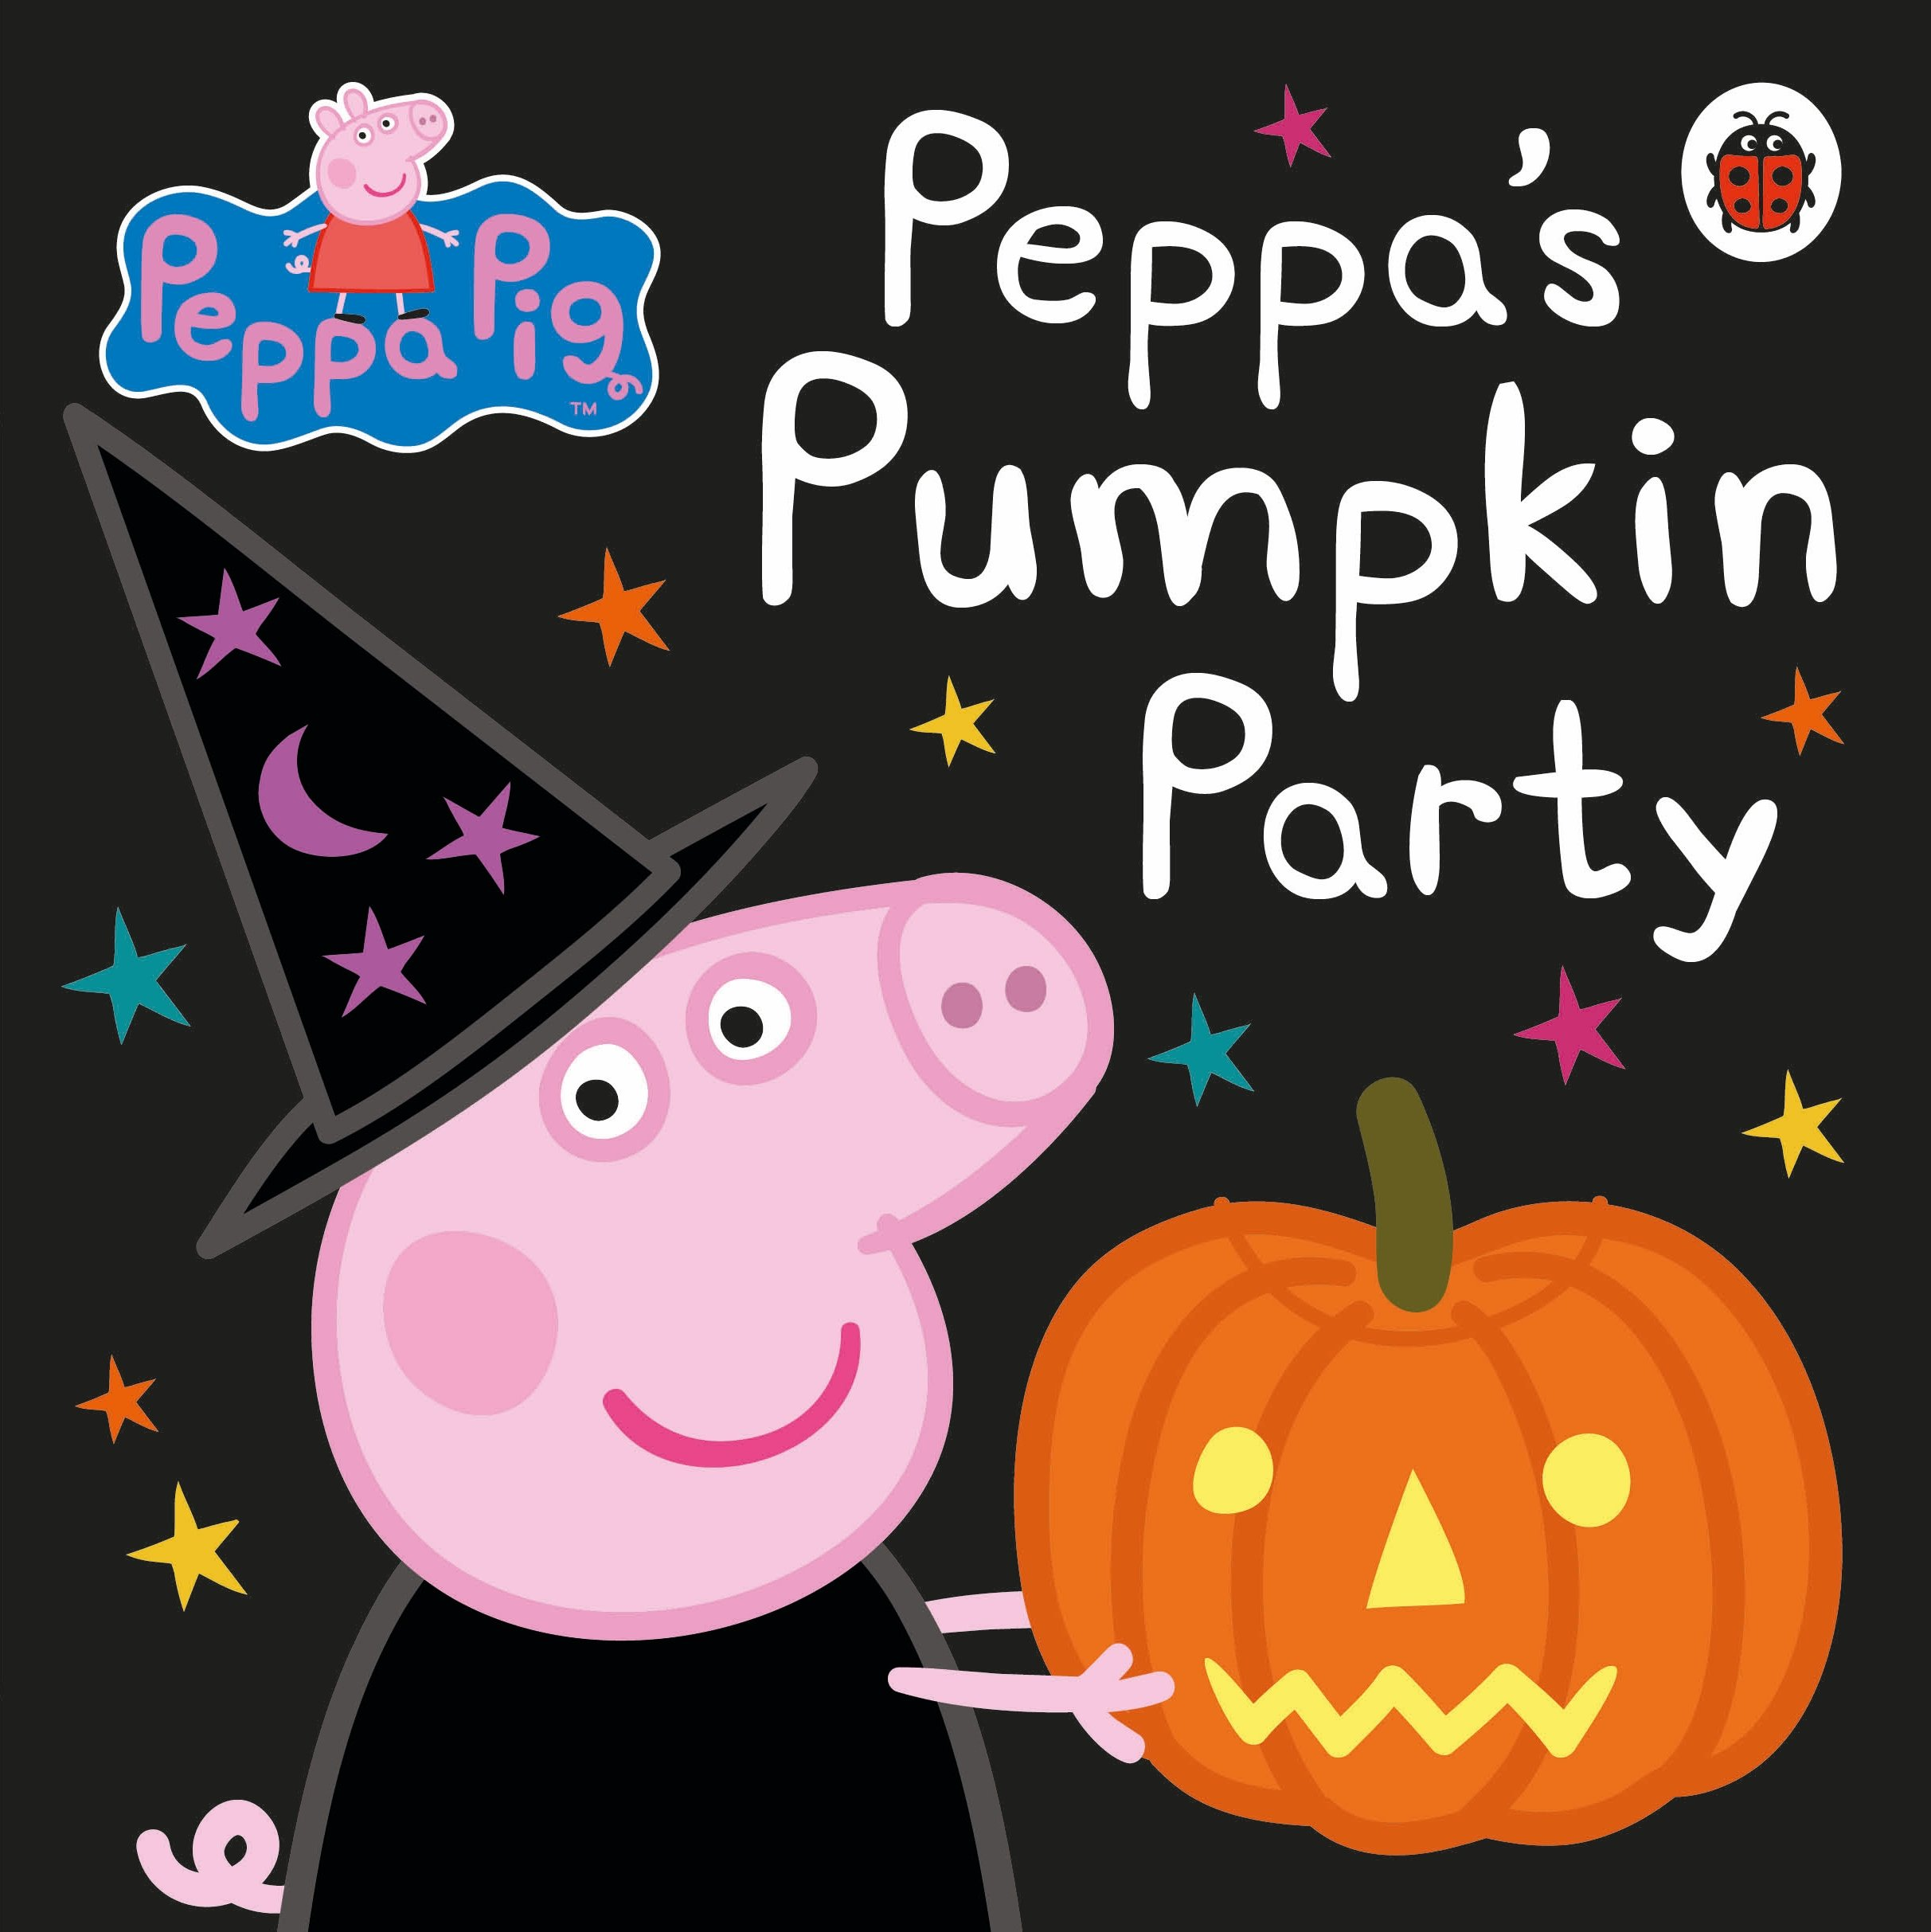 Peppa Pig: Peppa's Pumpkin Party: Amazon.co.uk: Praca Zbiorowa.